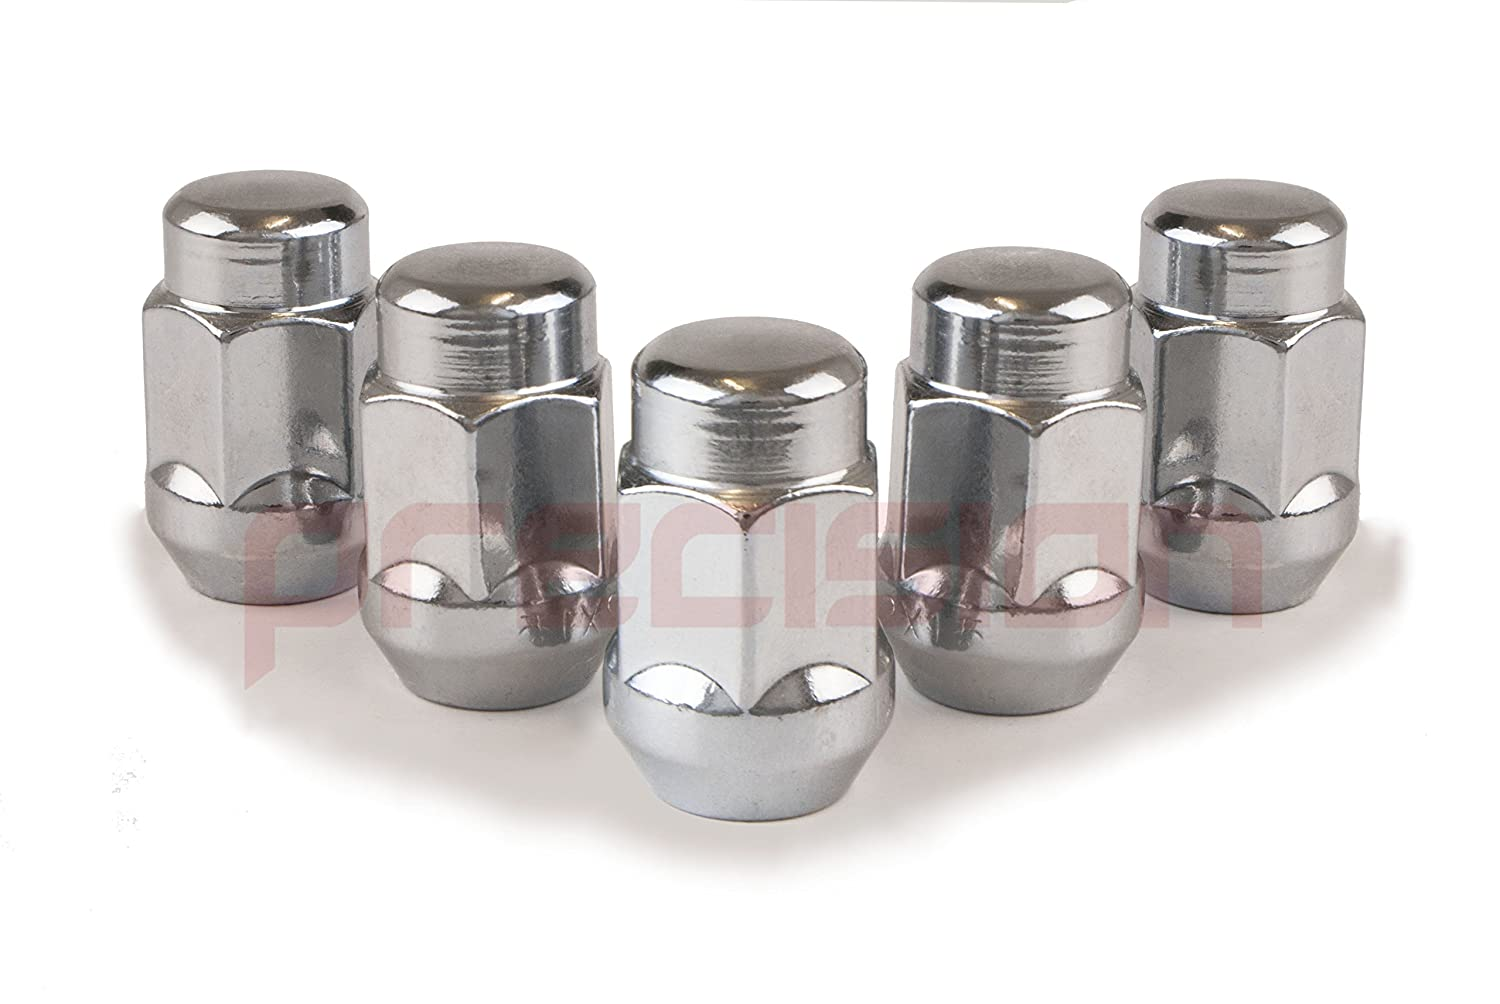 20NM10522 Precision 20 x Chrome Wheel Nuts for Ḟord C-Max with Aftermarket Alloy Wheels Part No